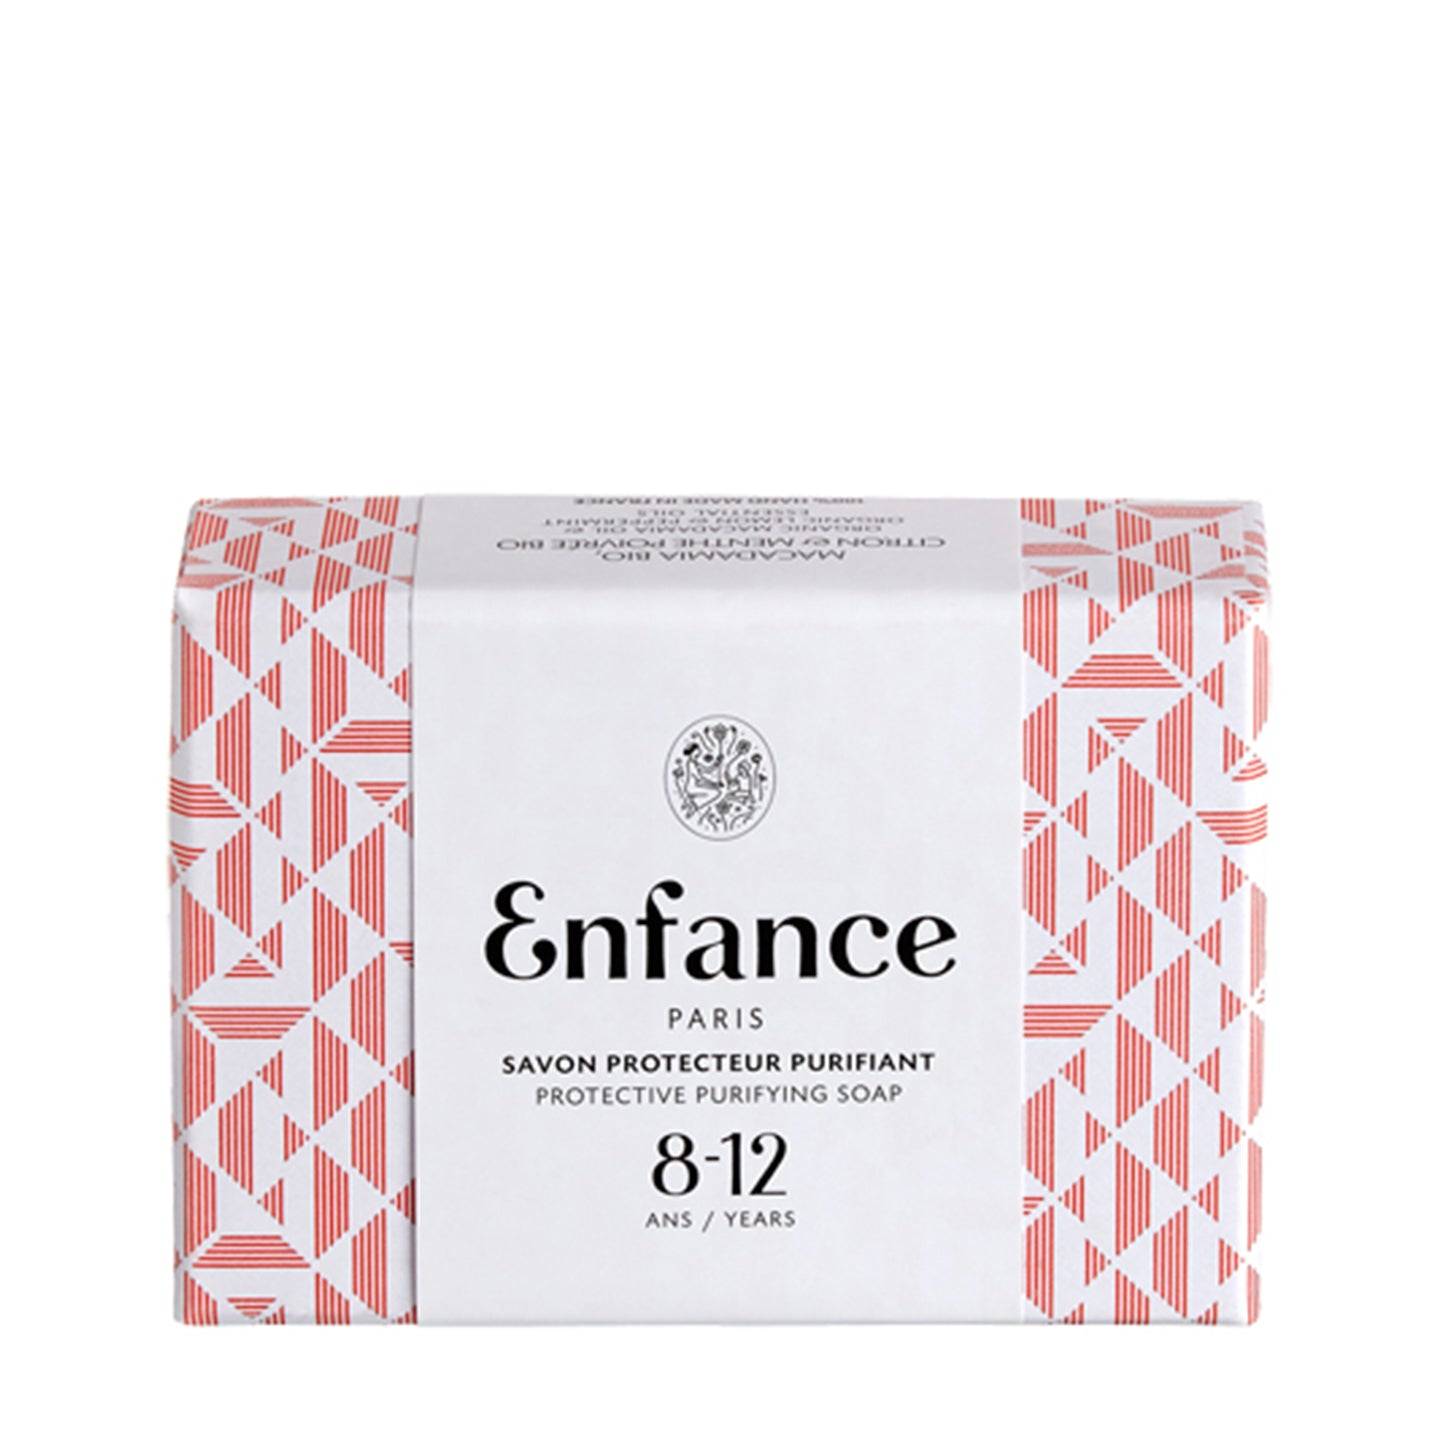 Enfance Paris Protective Invigorating Soap 8-12 Years